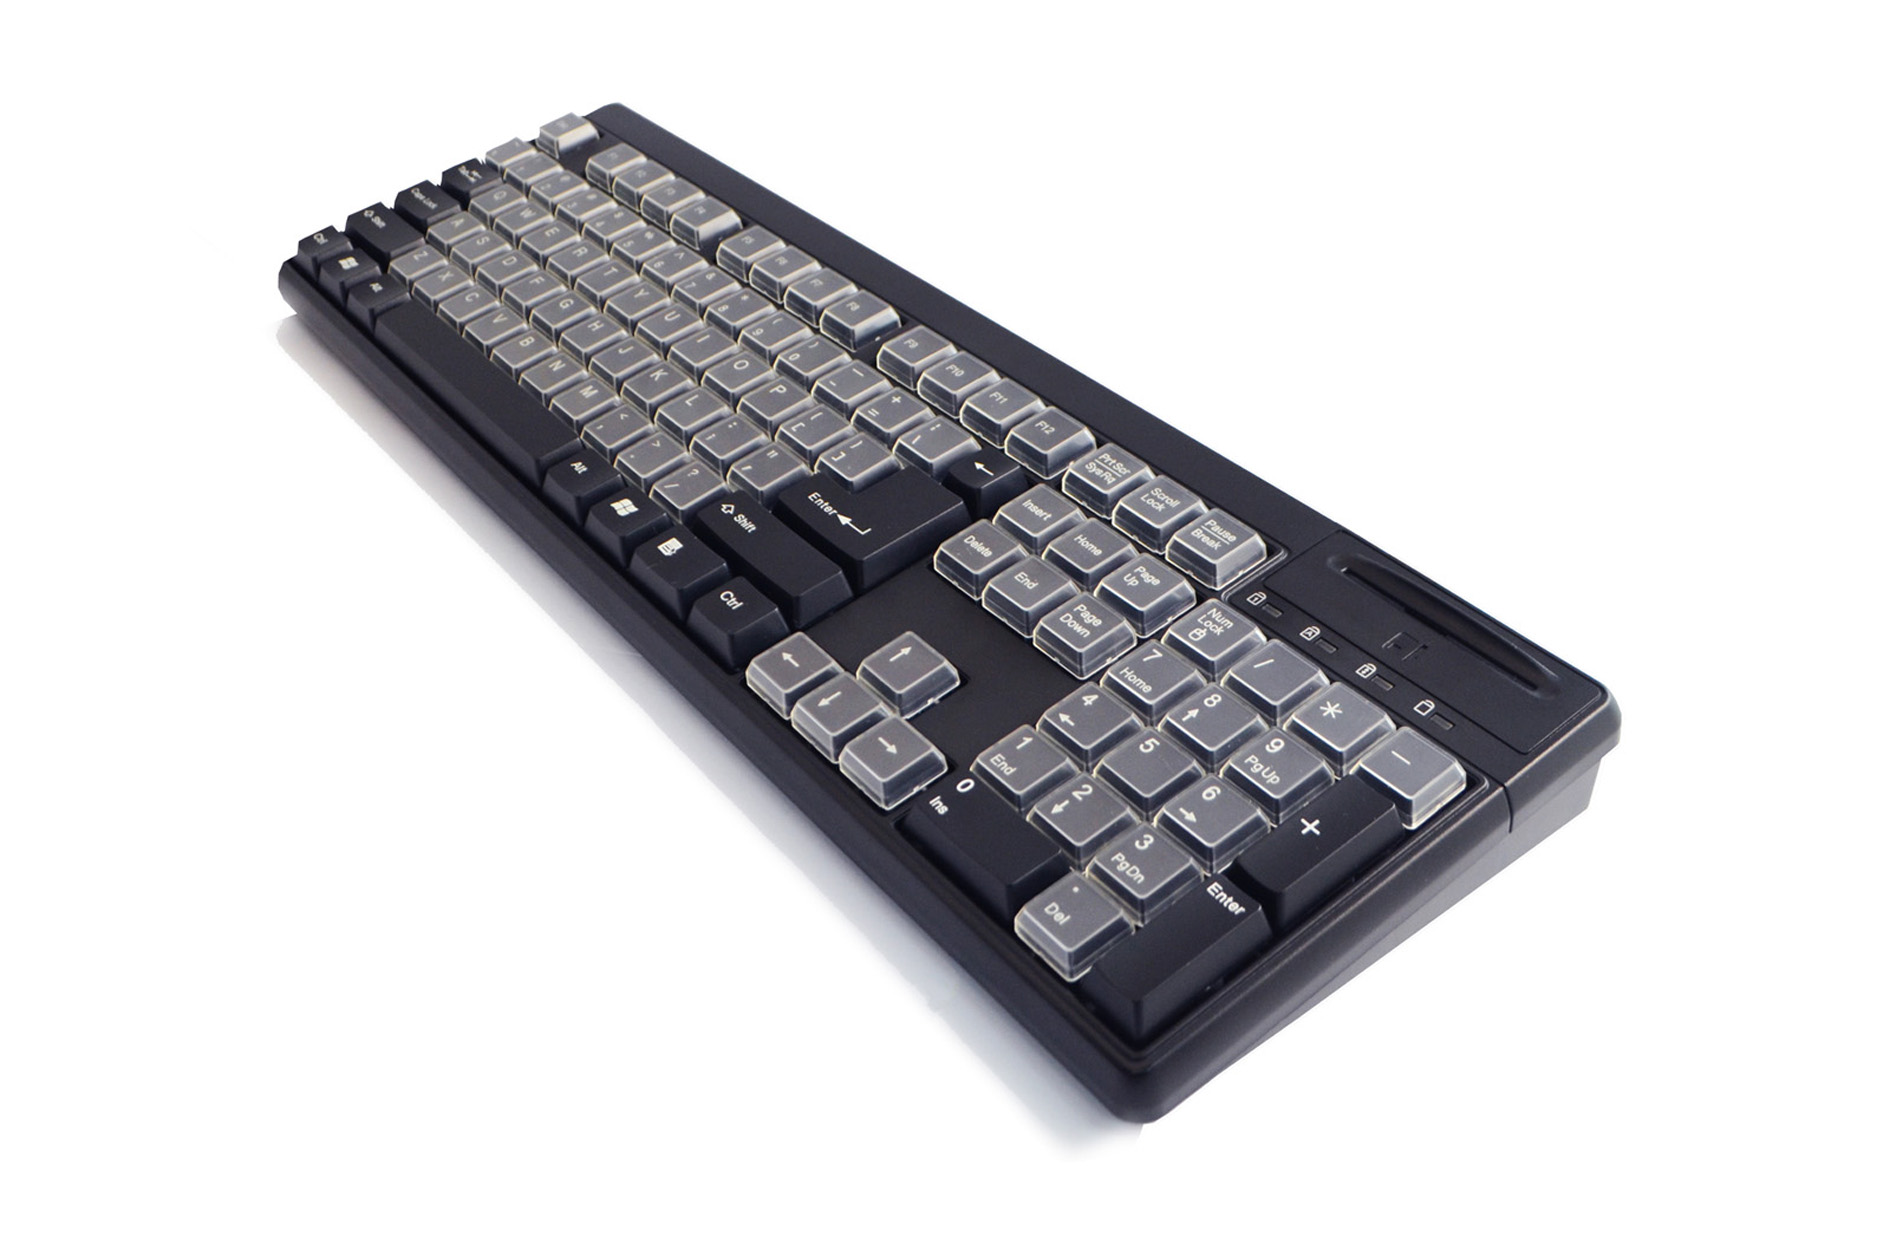 PKB 6880B SCR Programmable USB Keyboard Built In Smart Card Reader With 89 Key Relengeable Keycaps